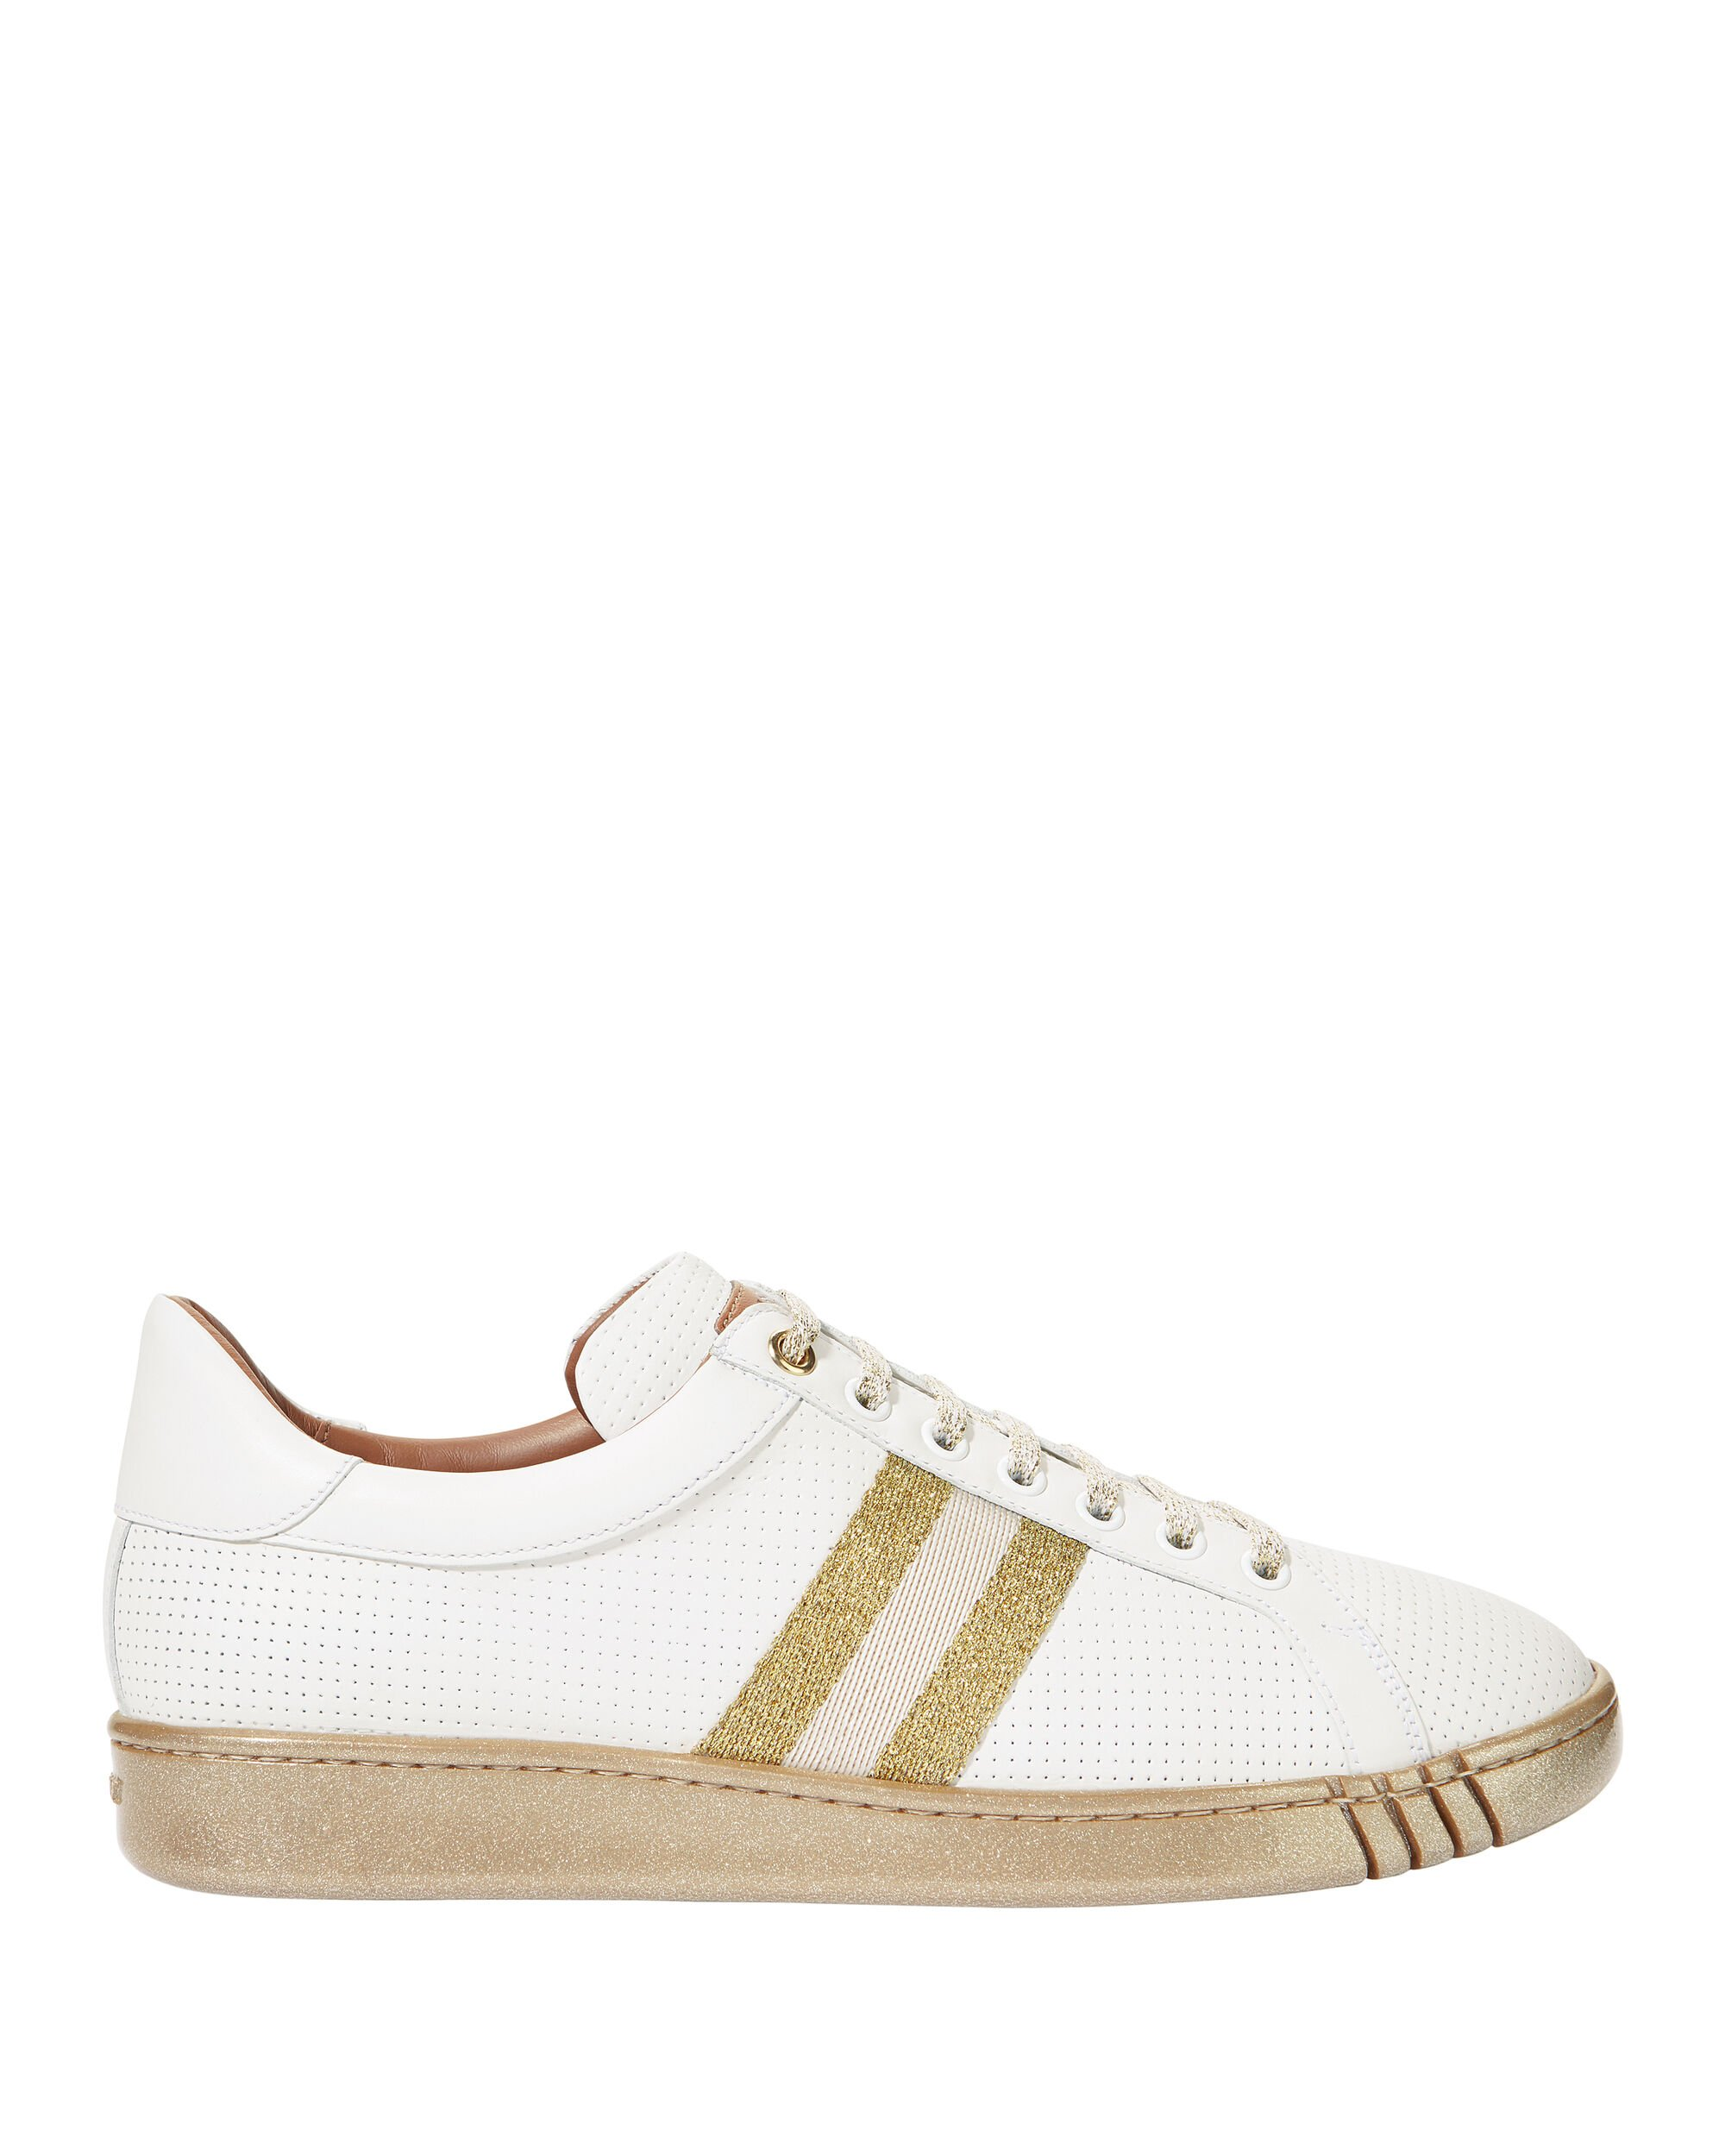 Wicki Glitter Striped Trainer Sneakers, WHITE, hi-res